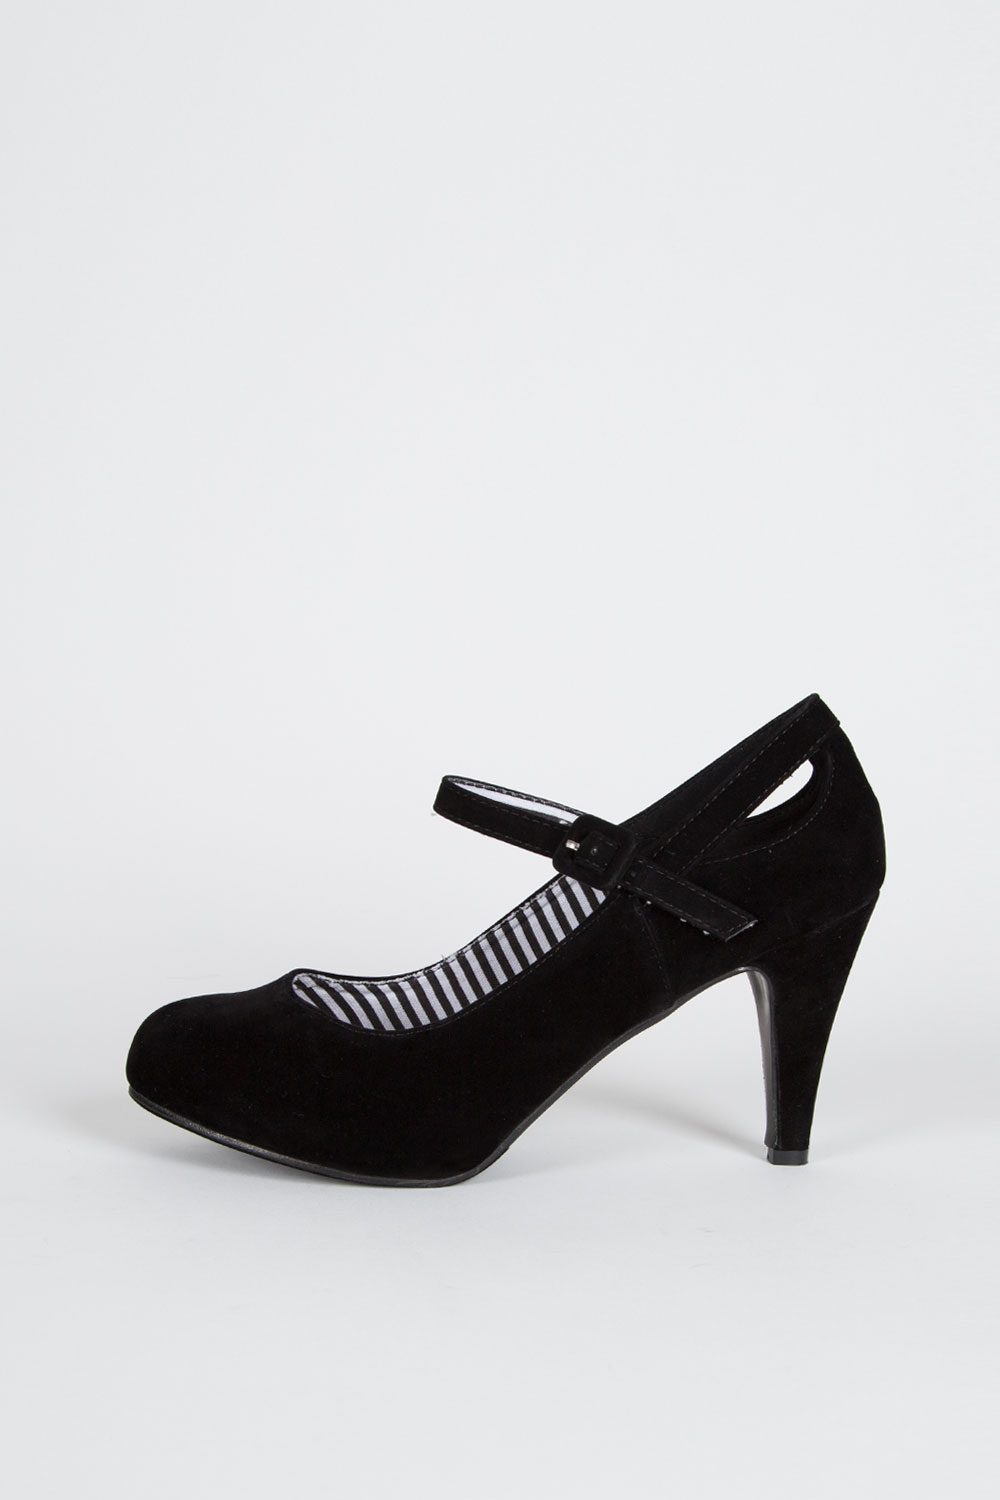 Black Medium Heels IkjCgyoU